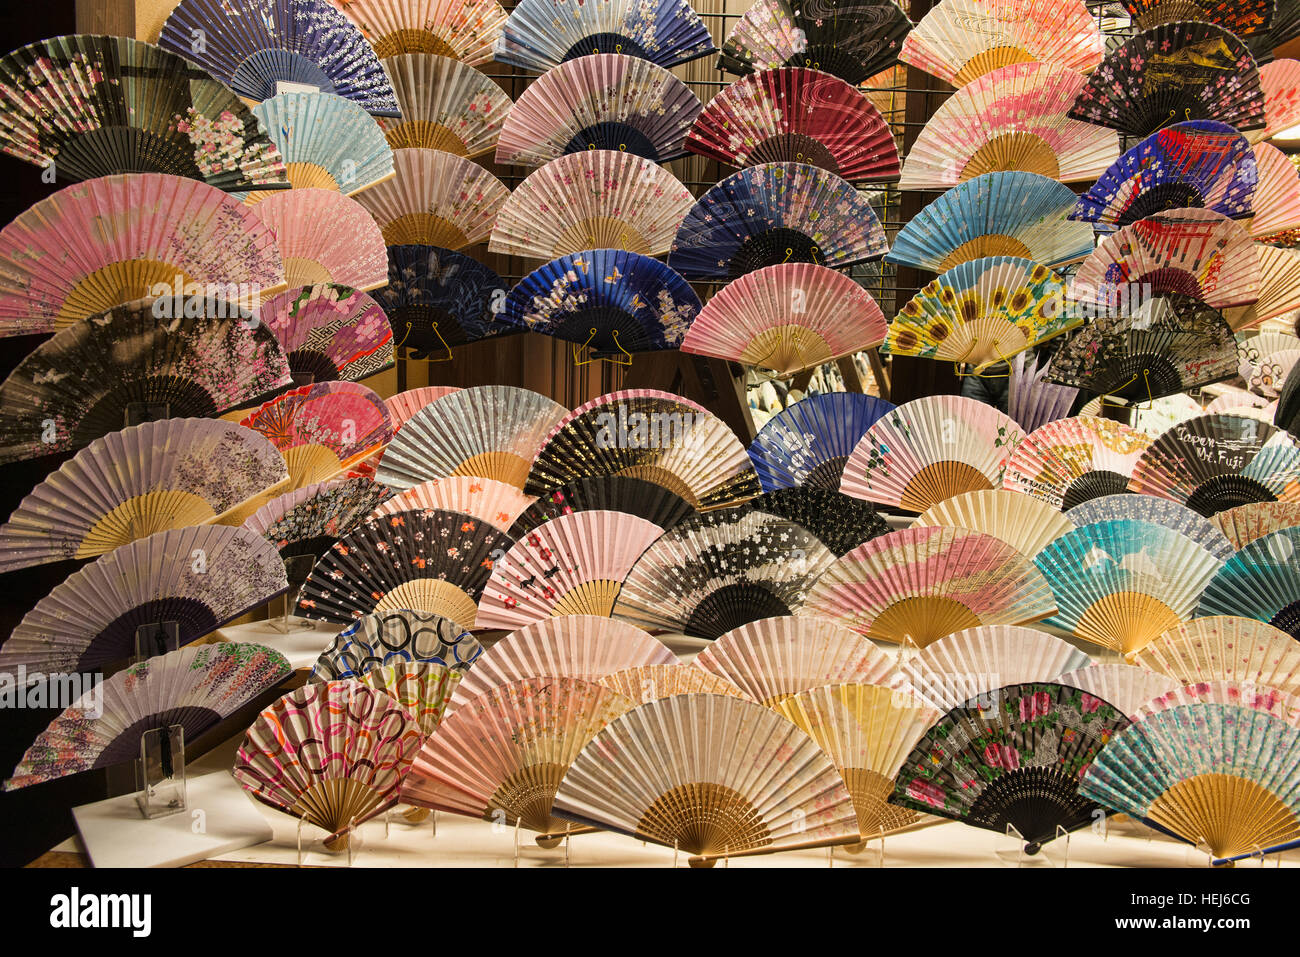 Japanese fans, Kyoto, Japan - Stock Image